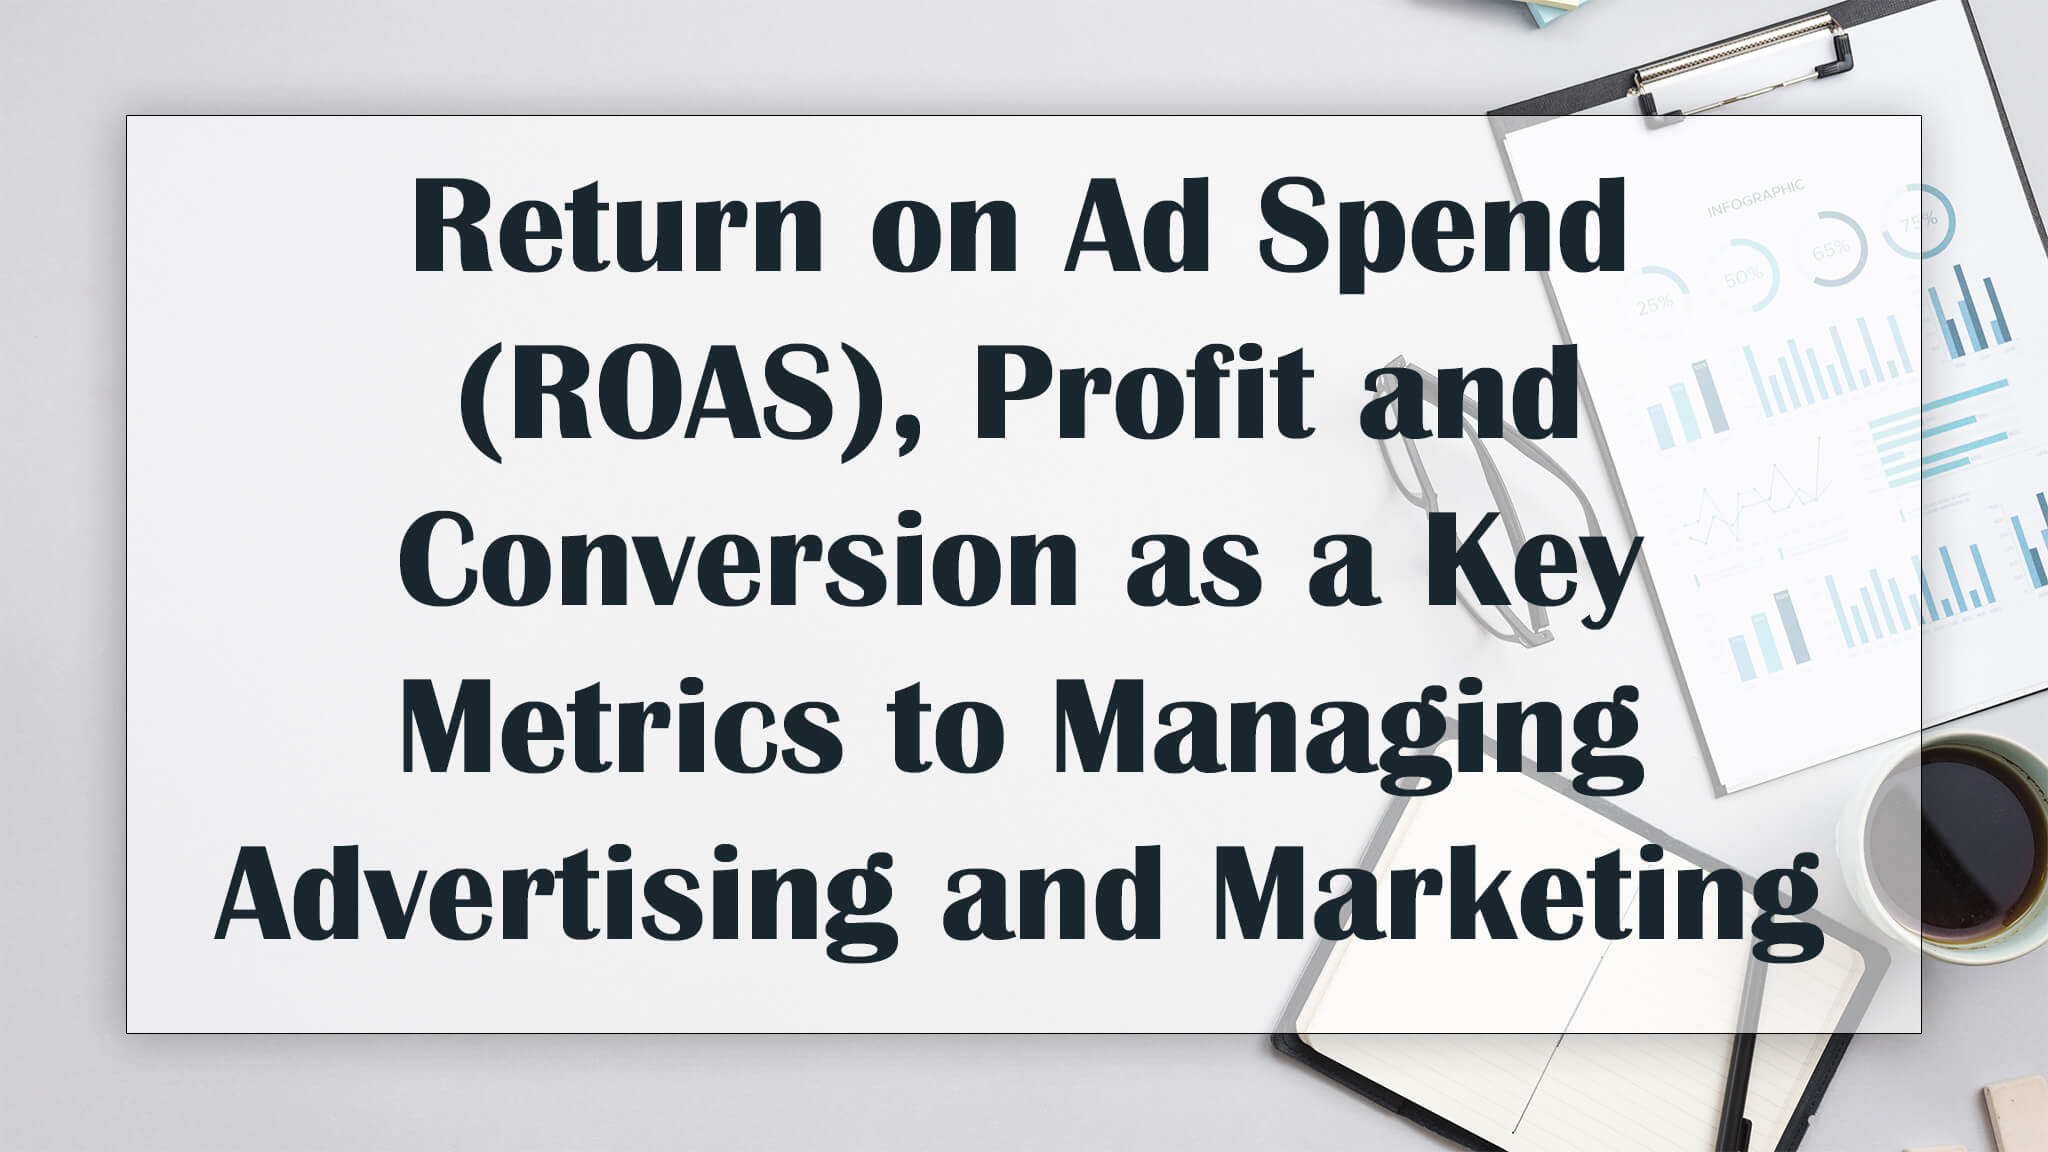 Return on Ad Spend (ROAS), Profit and Conversion as a Key Metrics to Managing Advertising and Marketing Spends - Fantastic Imago